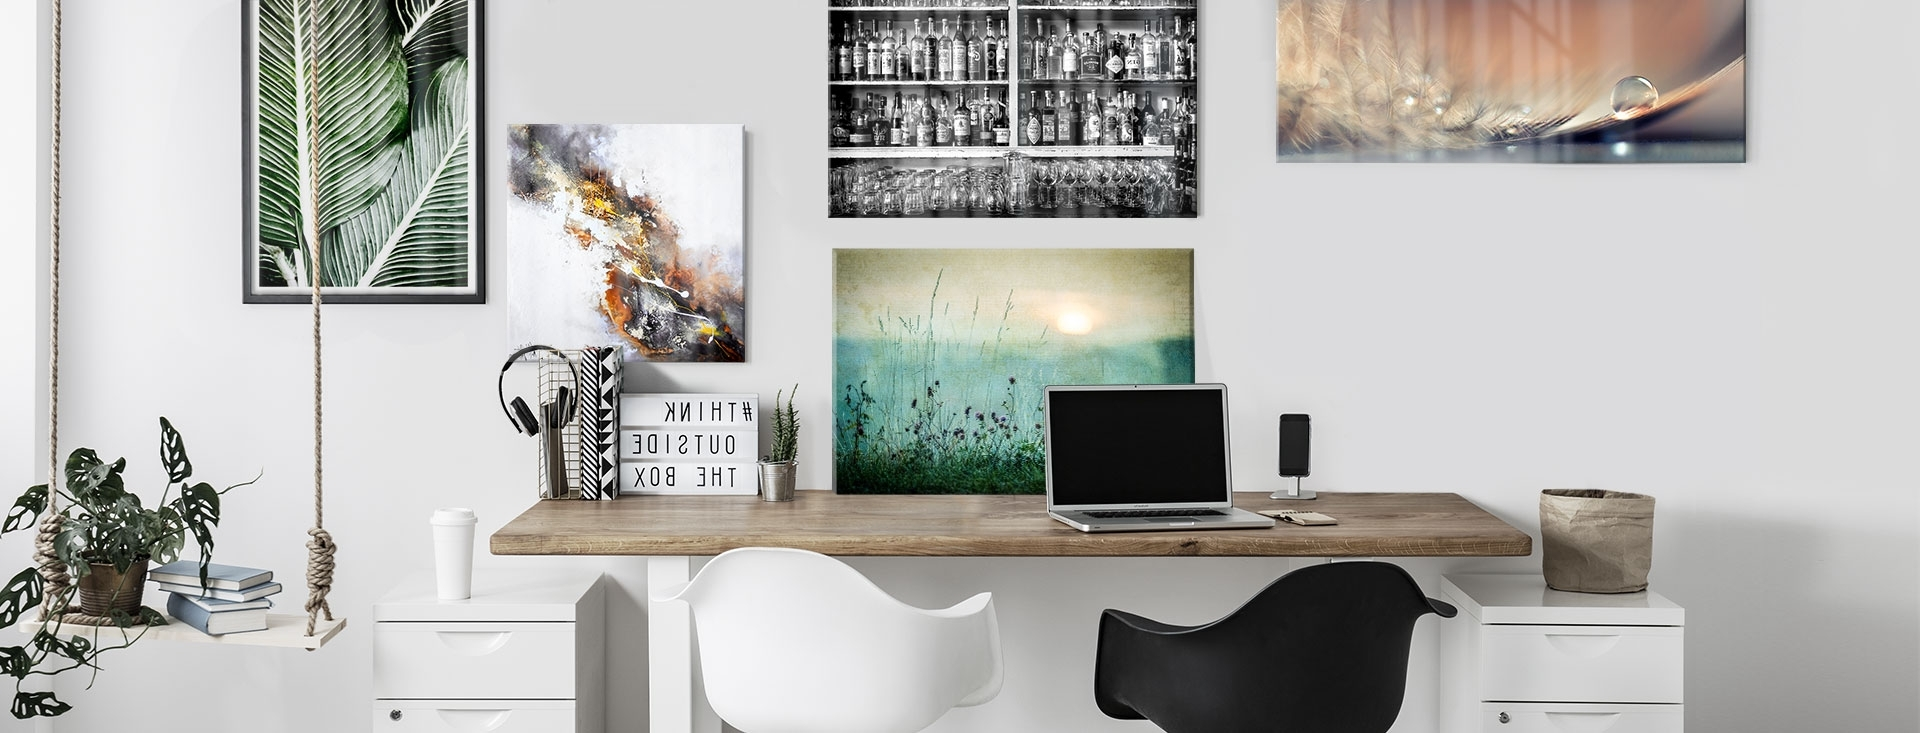 Wall Art Throughout 2018 Wall Art (View 12 of 15)